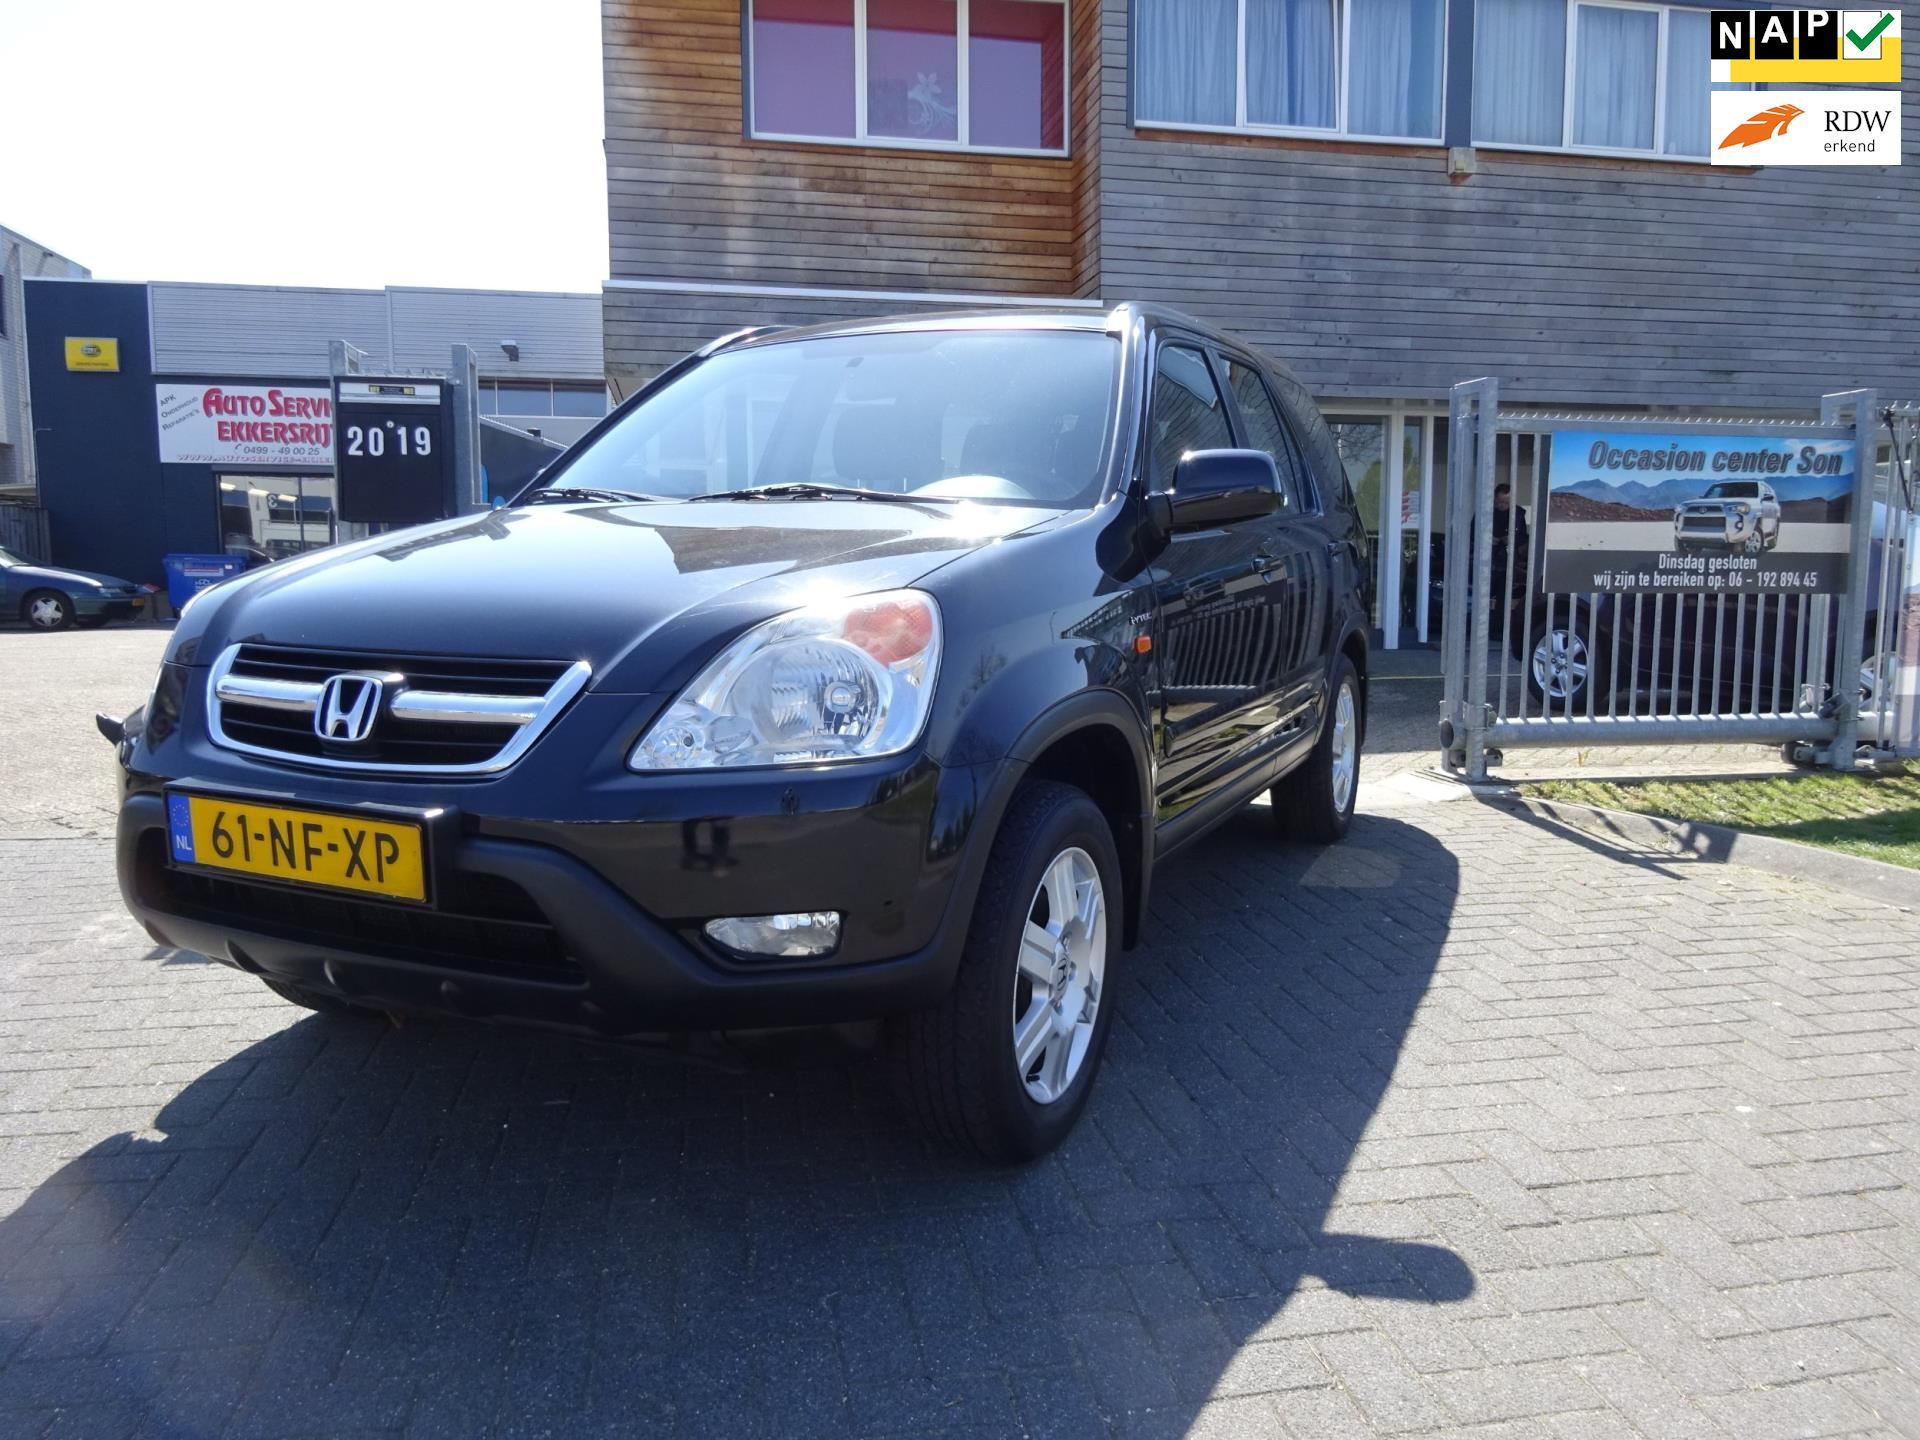 Honda CR-V occasion - Occasion Center Son B.V.